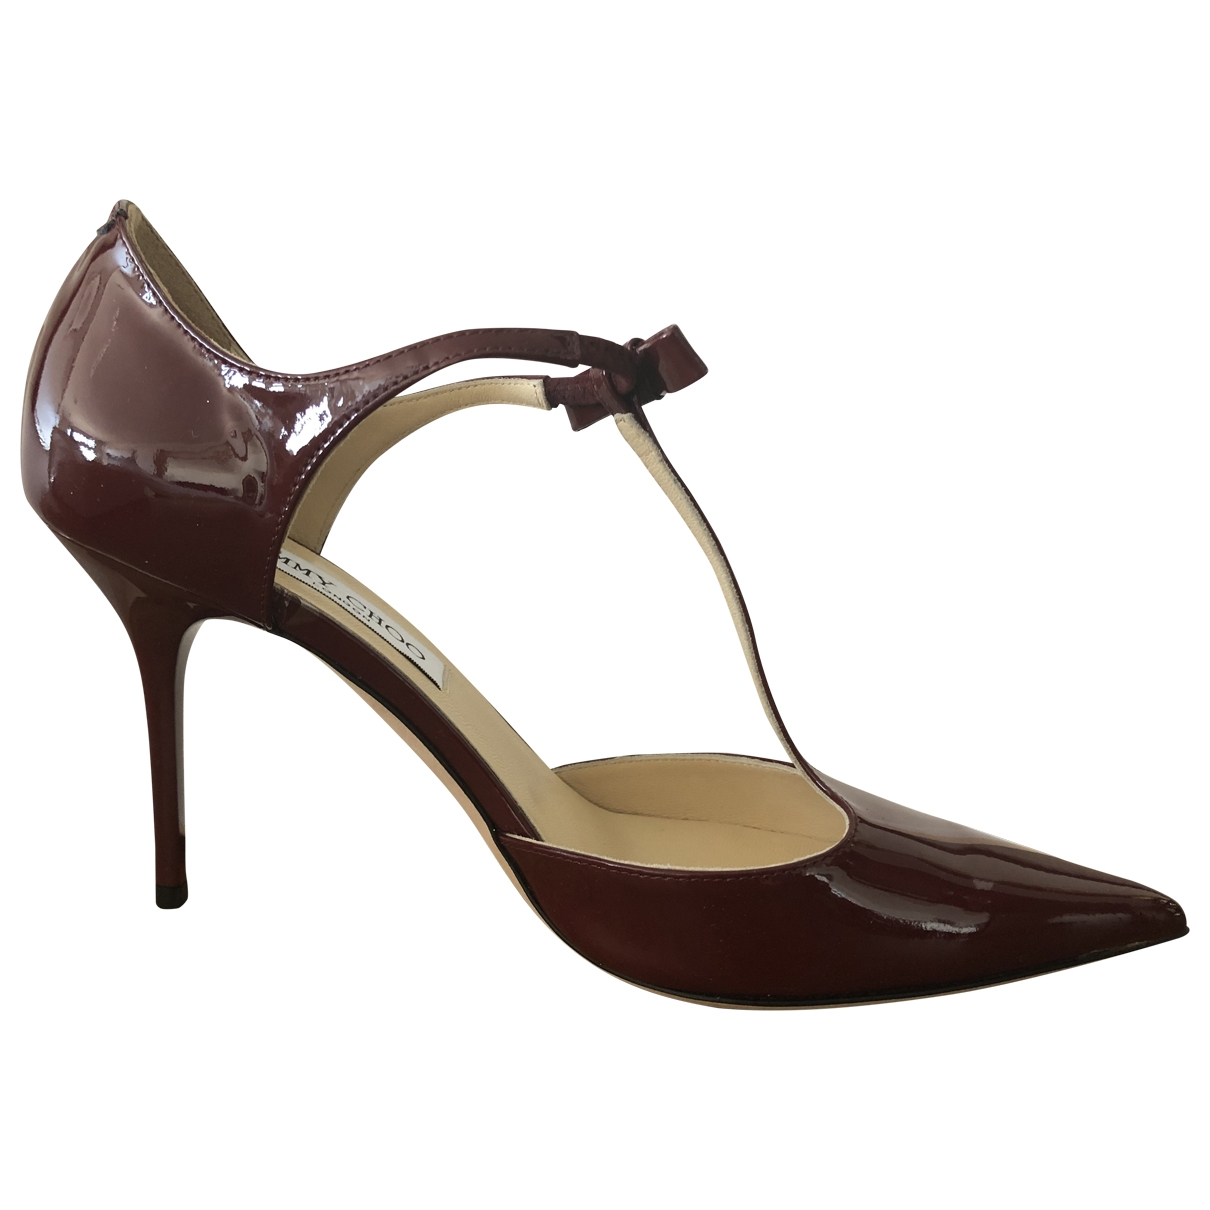 Jimmy Choo \N Burgundy Patent leather Heels for Women 37.5 EU